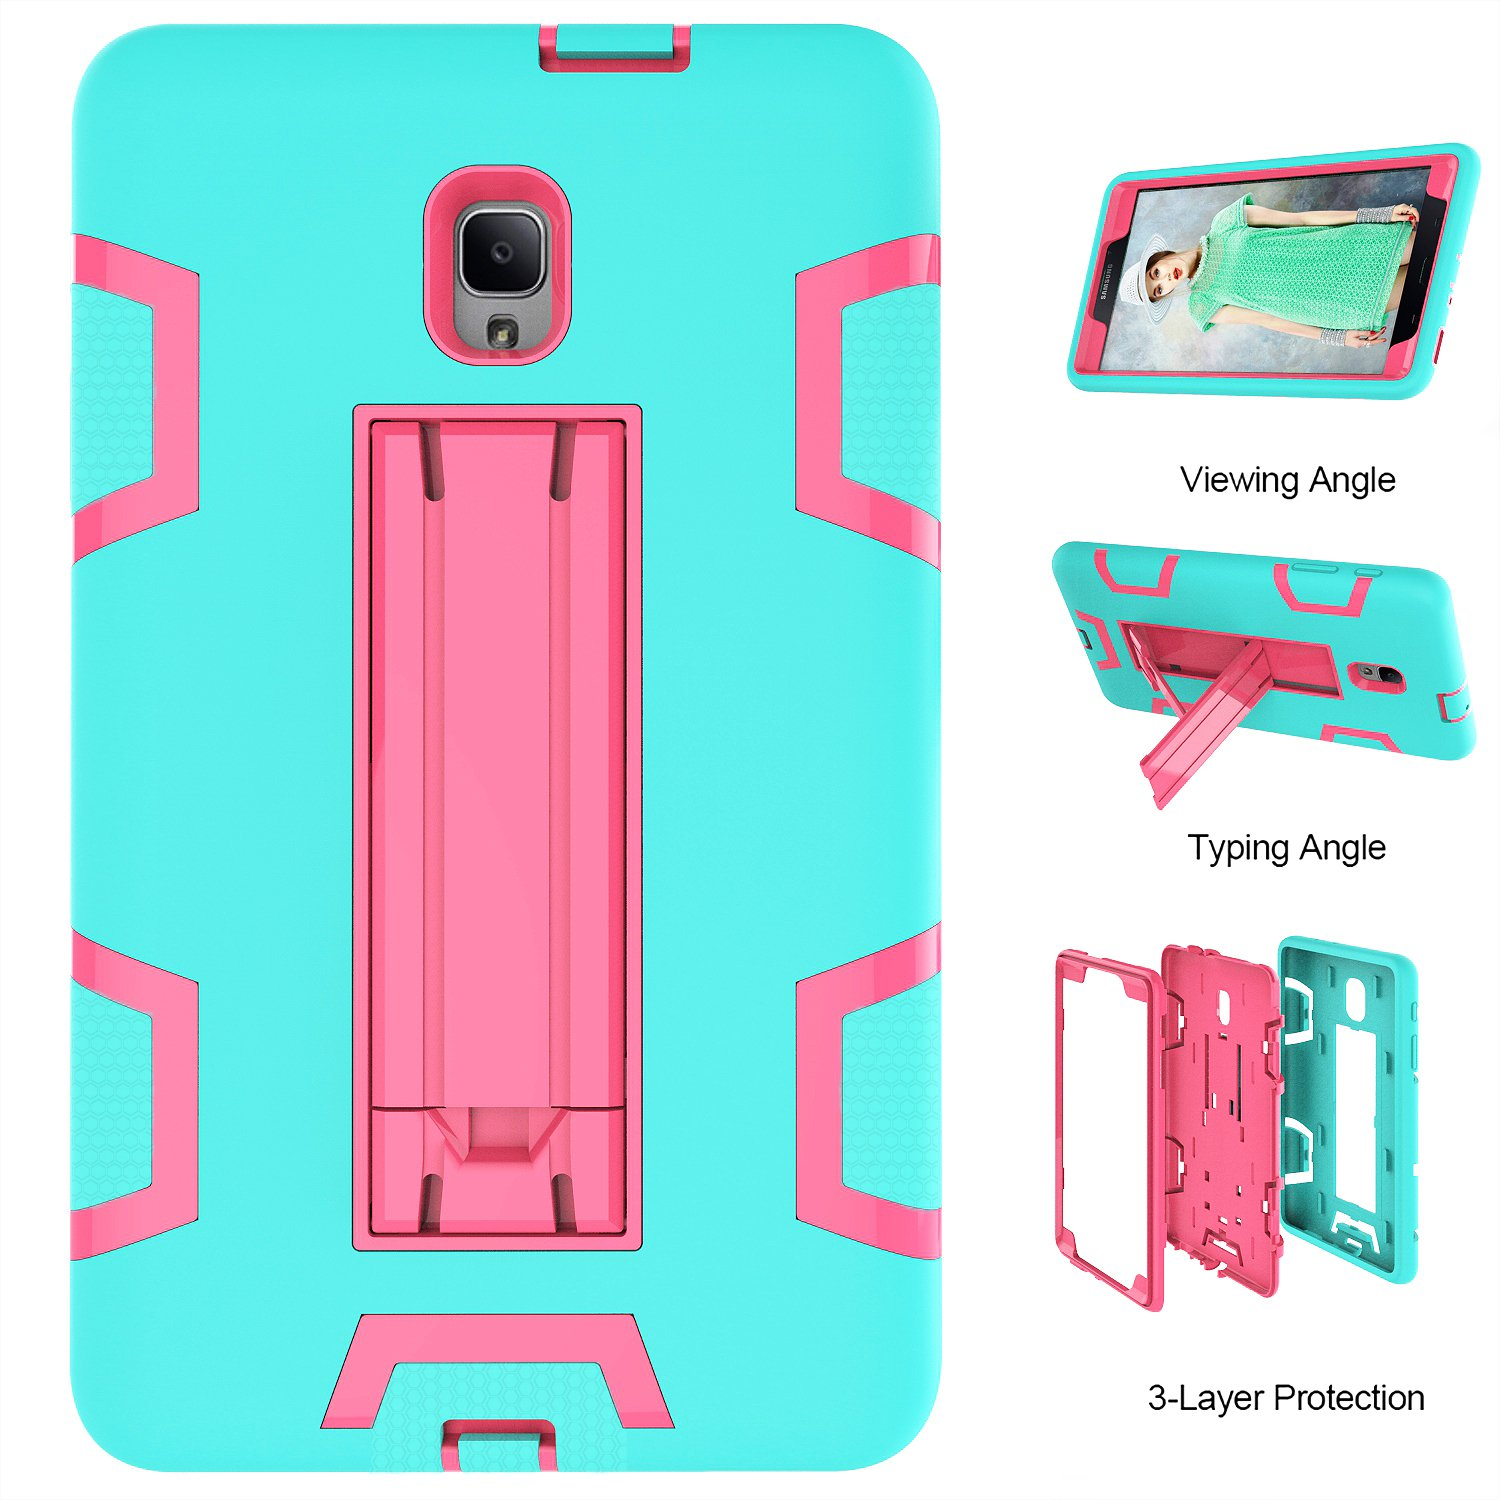 PPSHA Samsung Galaxy Tab A 8.0 2017 Case, High Impact Armor Heavy Duty Hybrid Shockproof Protection Cover Built With Stand for Galaxy Tab A 8.0 (SM-T380/T385) 2017 Release (Teal+Rose) by PPSHA (Image #4)